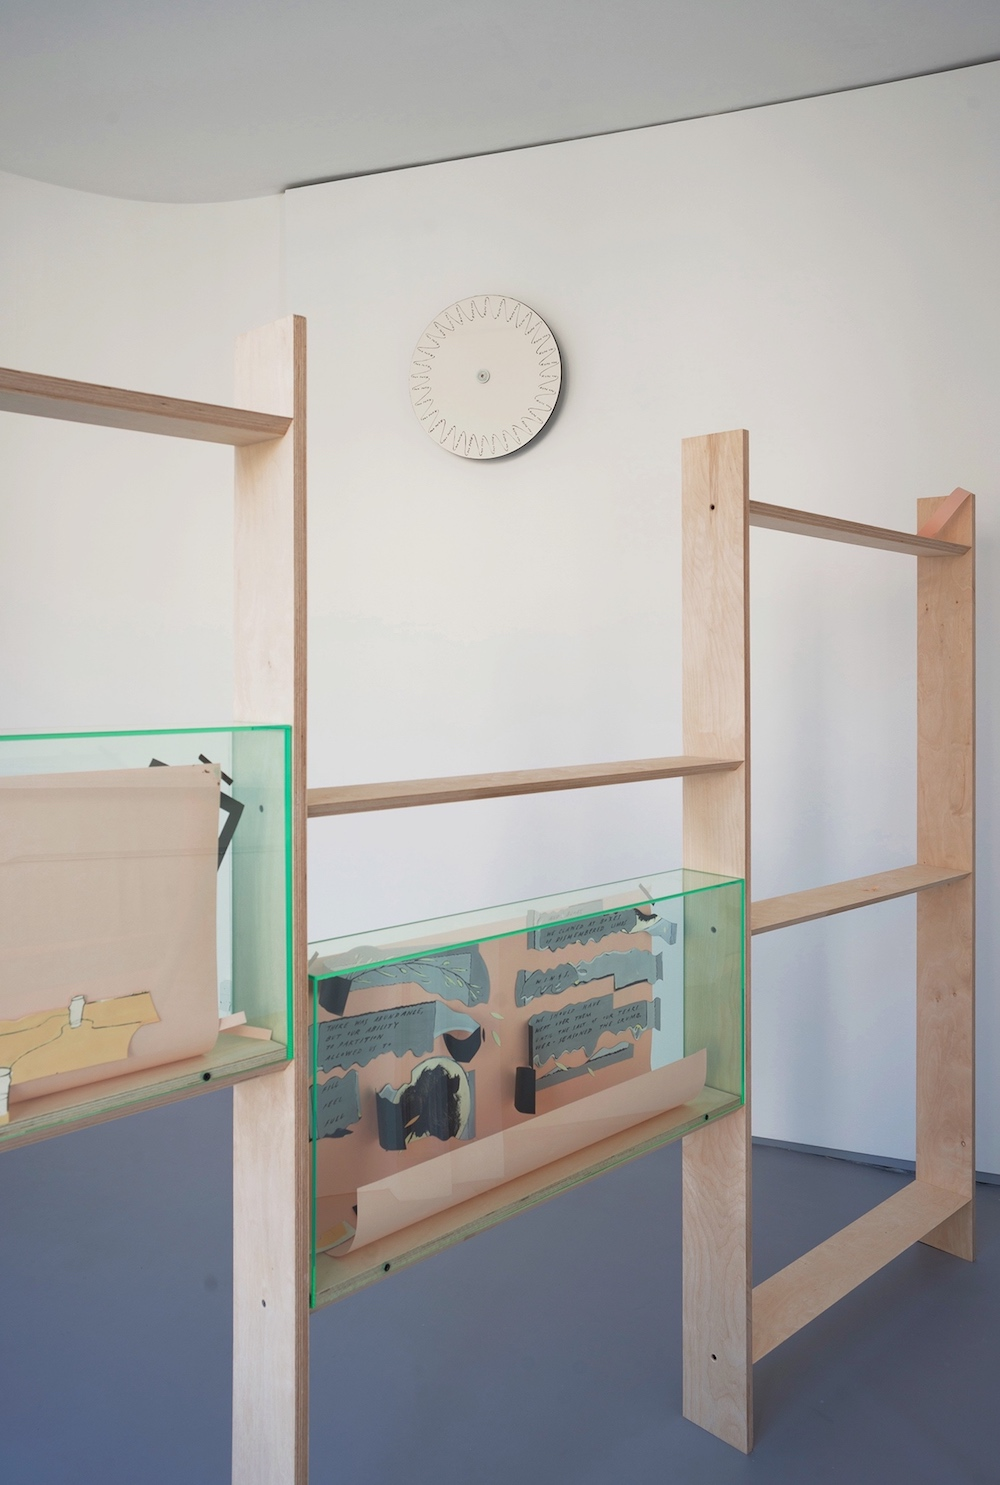 Charlie Godet Thomas, WHAT IS IT, THIS TIME?, 2018. Installation view. Lily Brooke, London, UK.